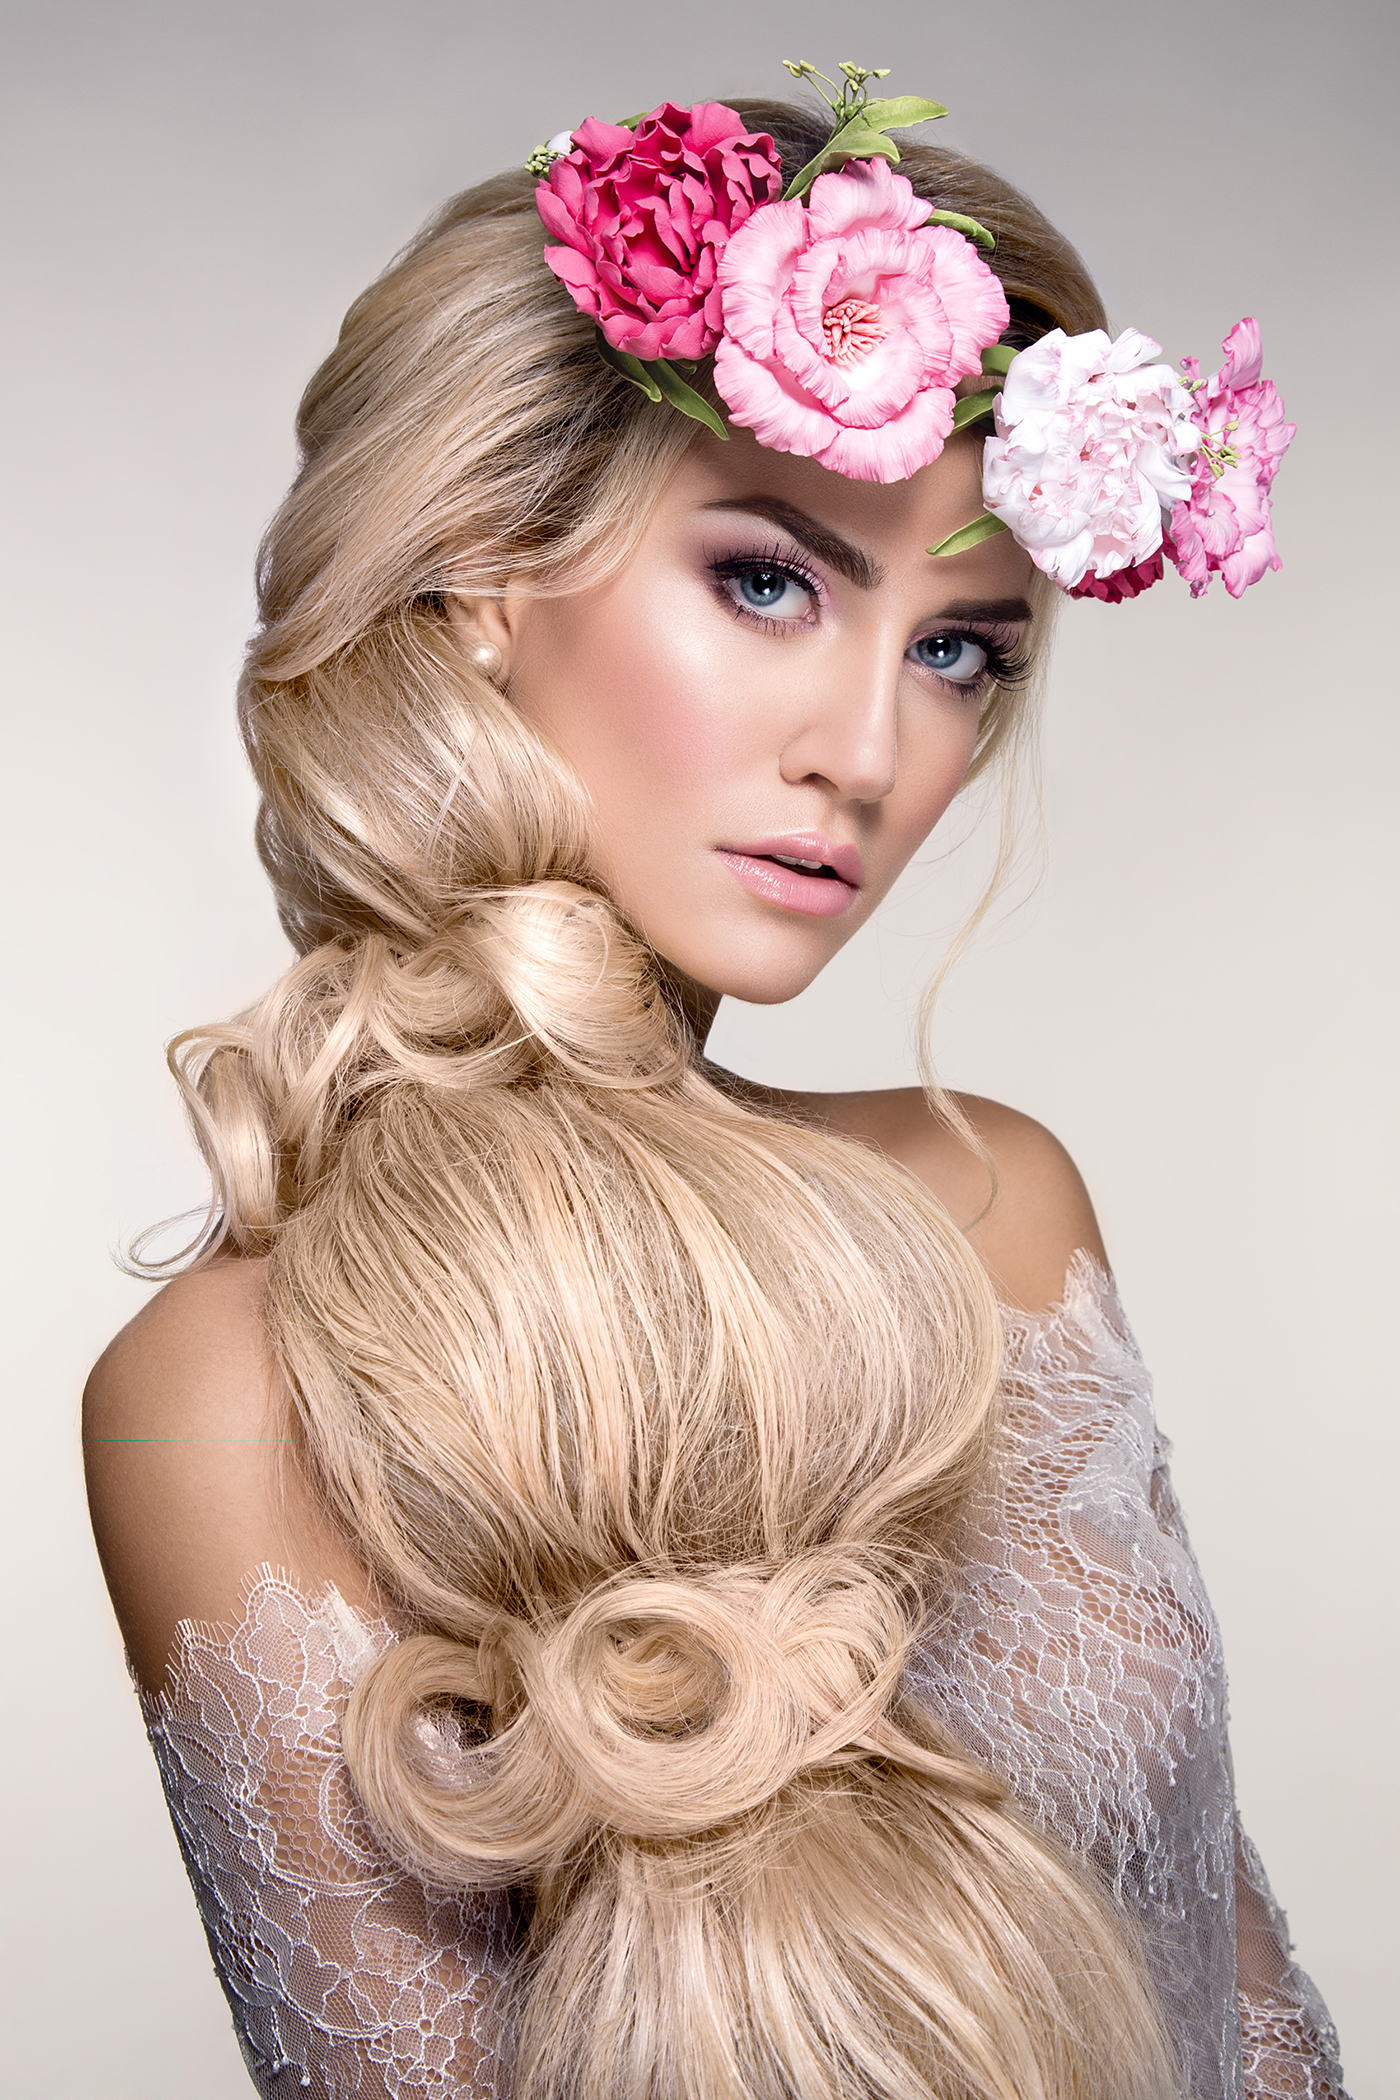 Tie up long hair floral beauties 53147